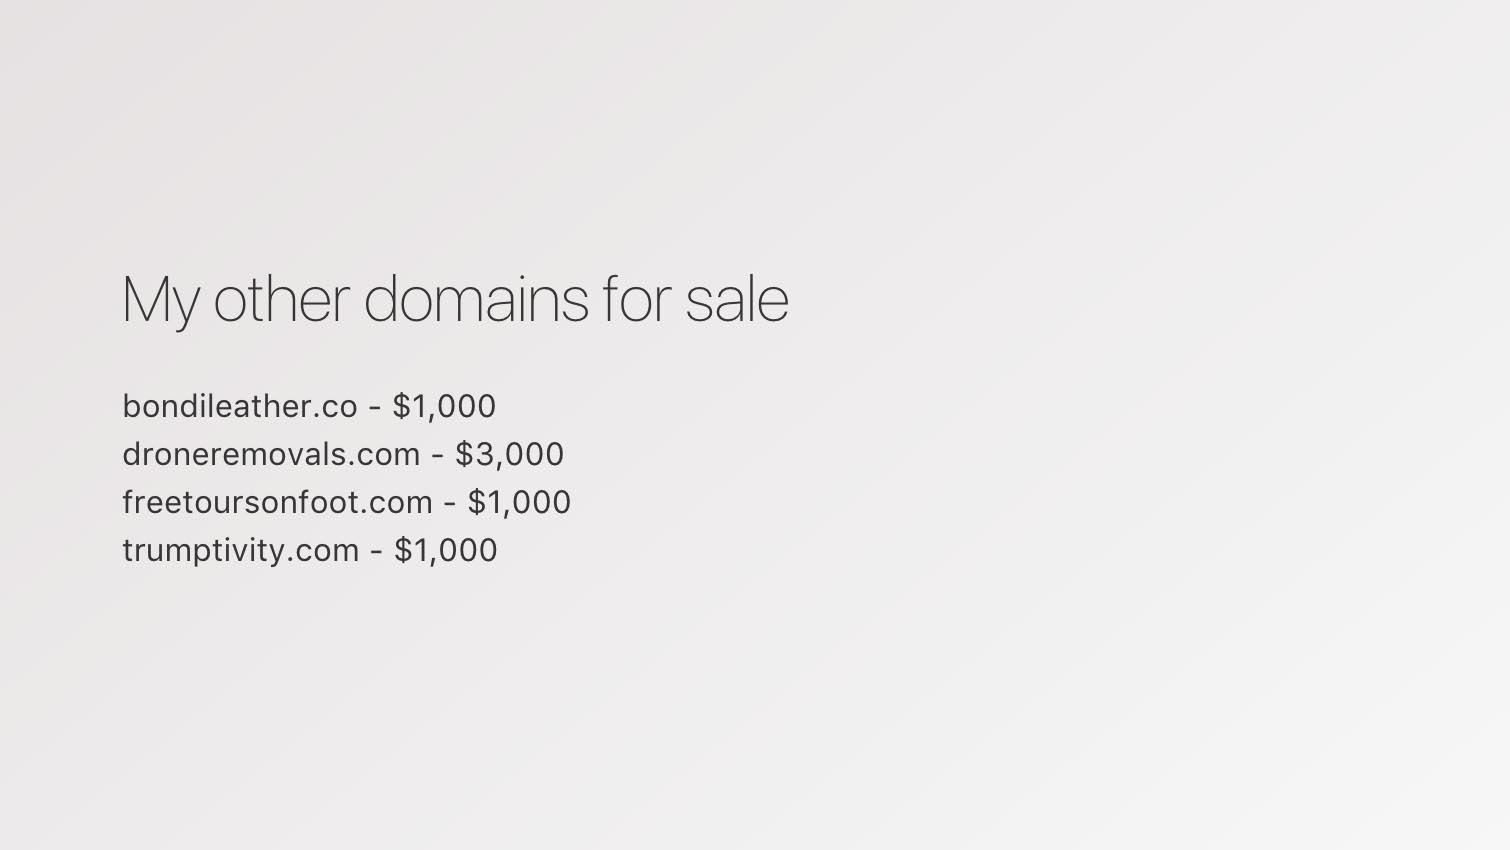 List all your domains